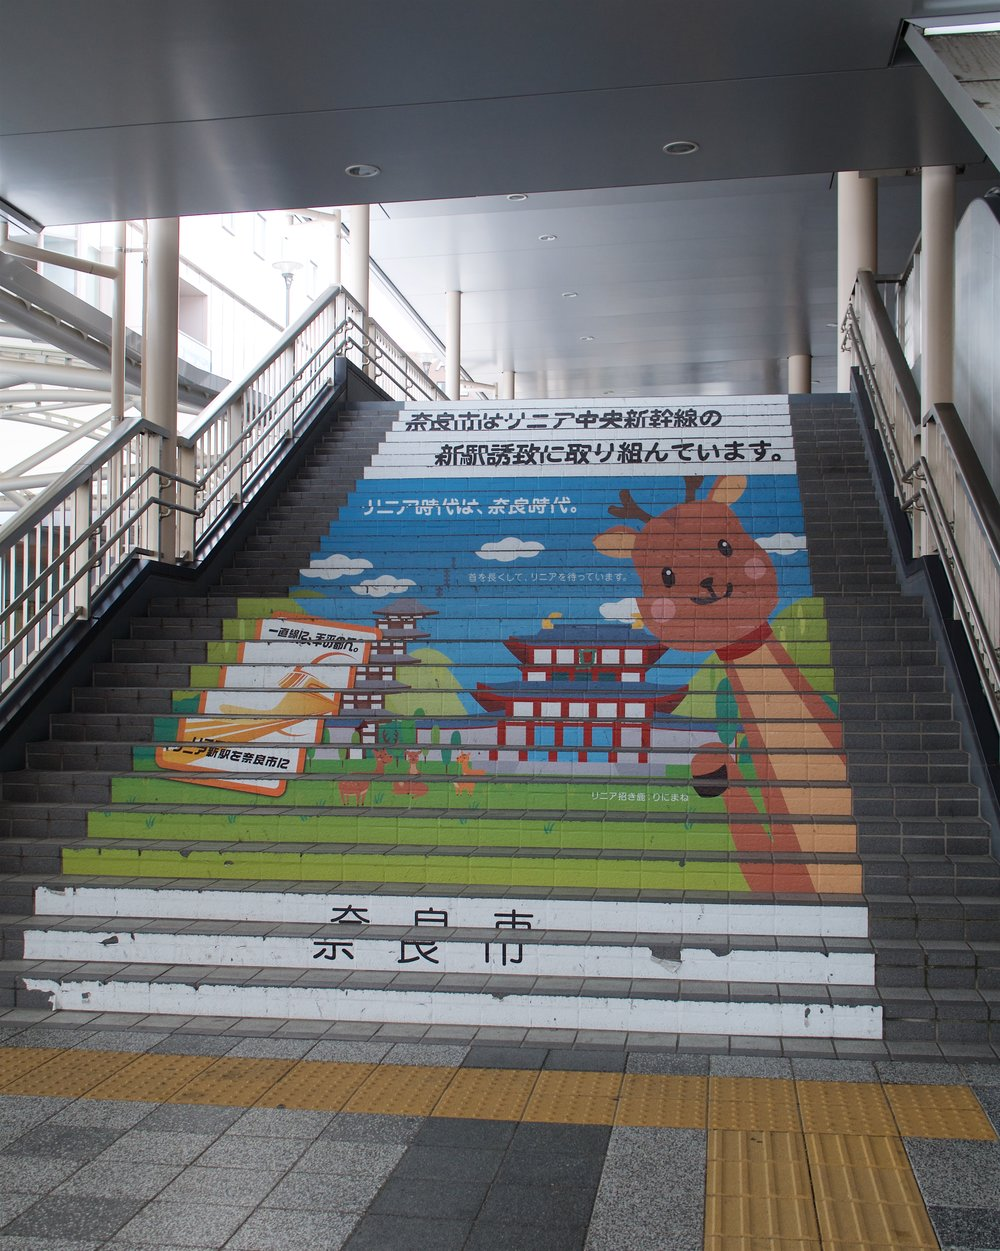 Staircase at Nara Station